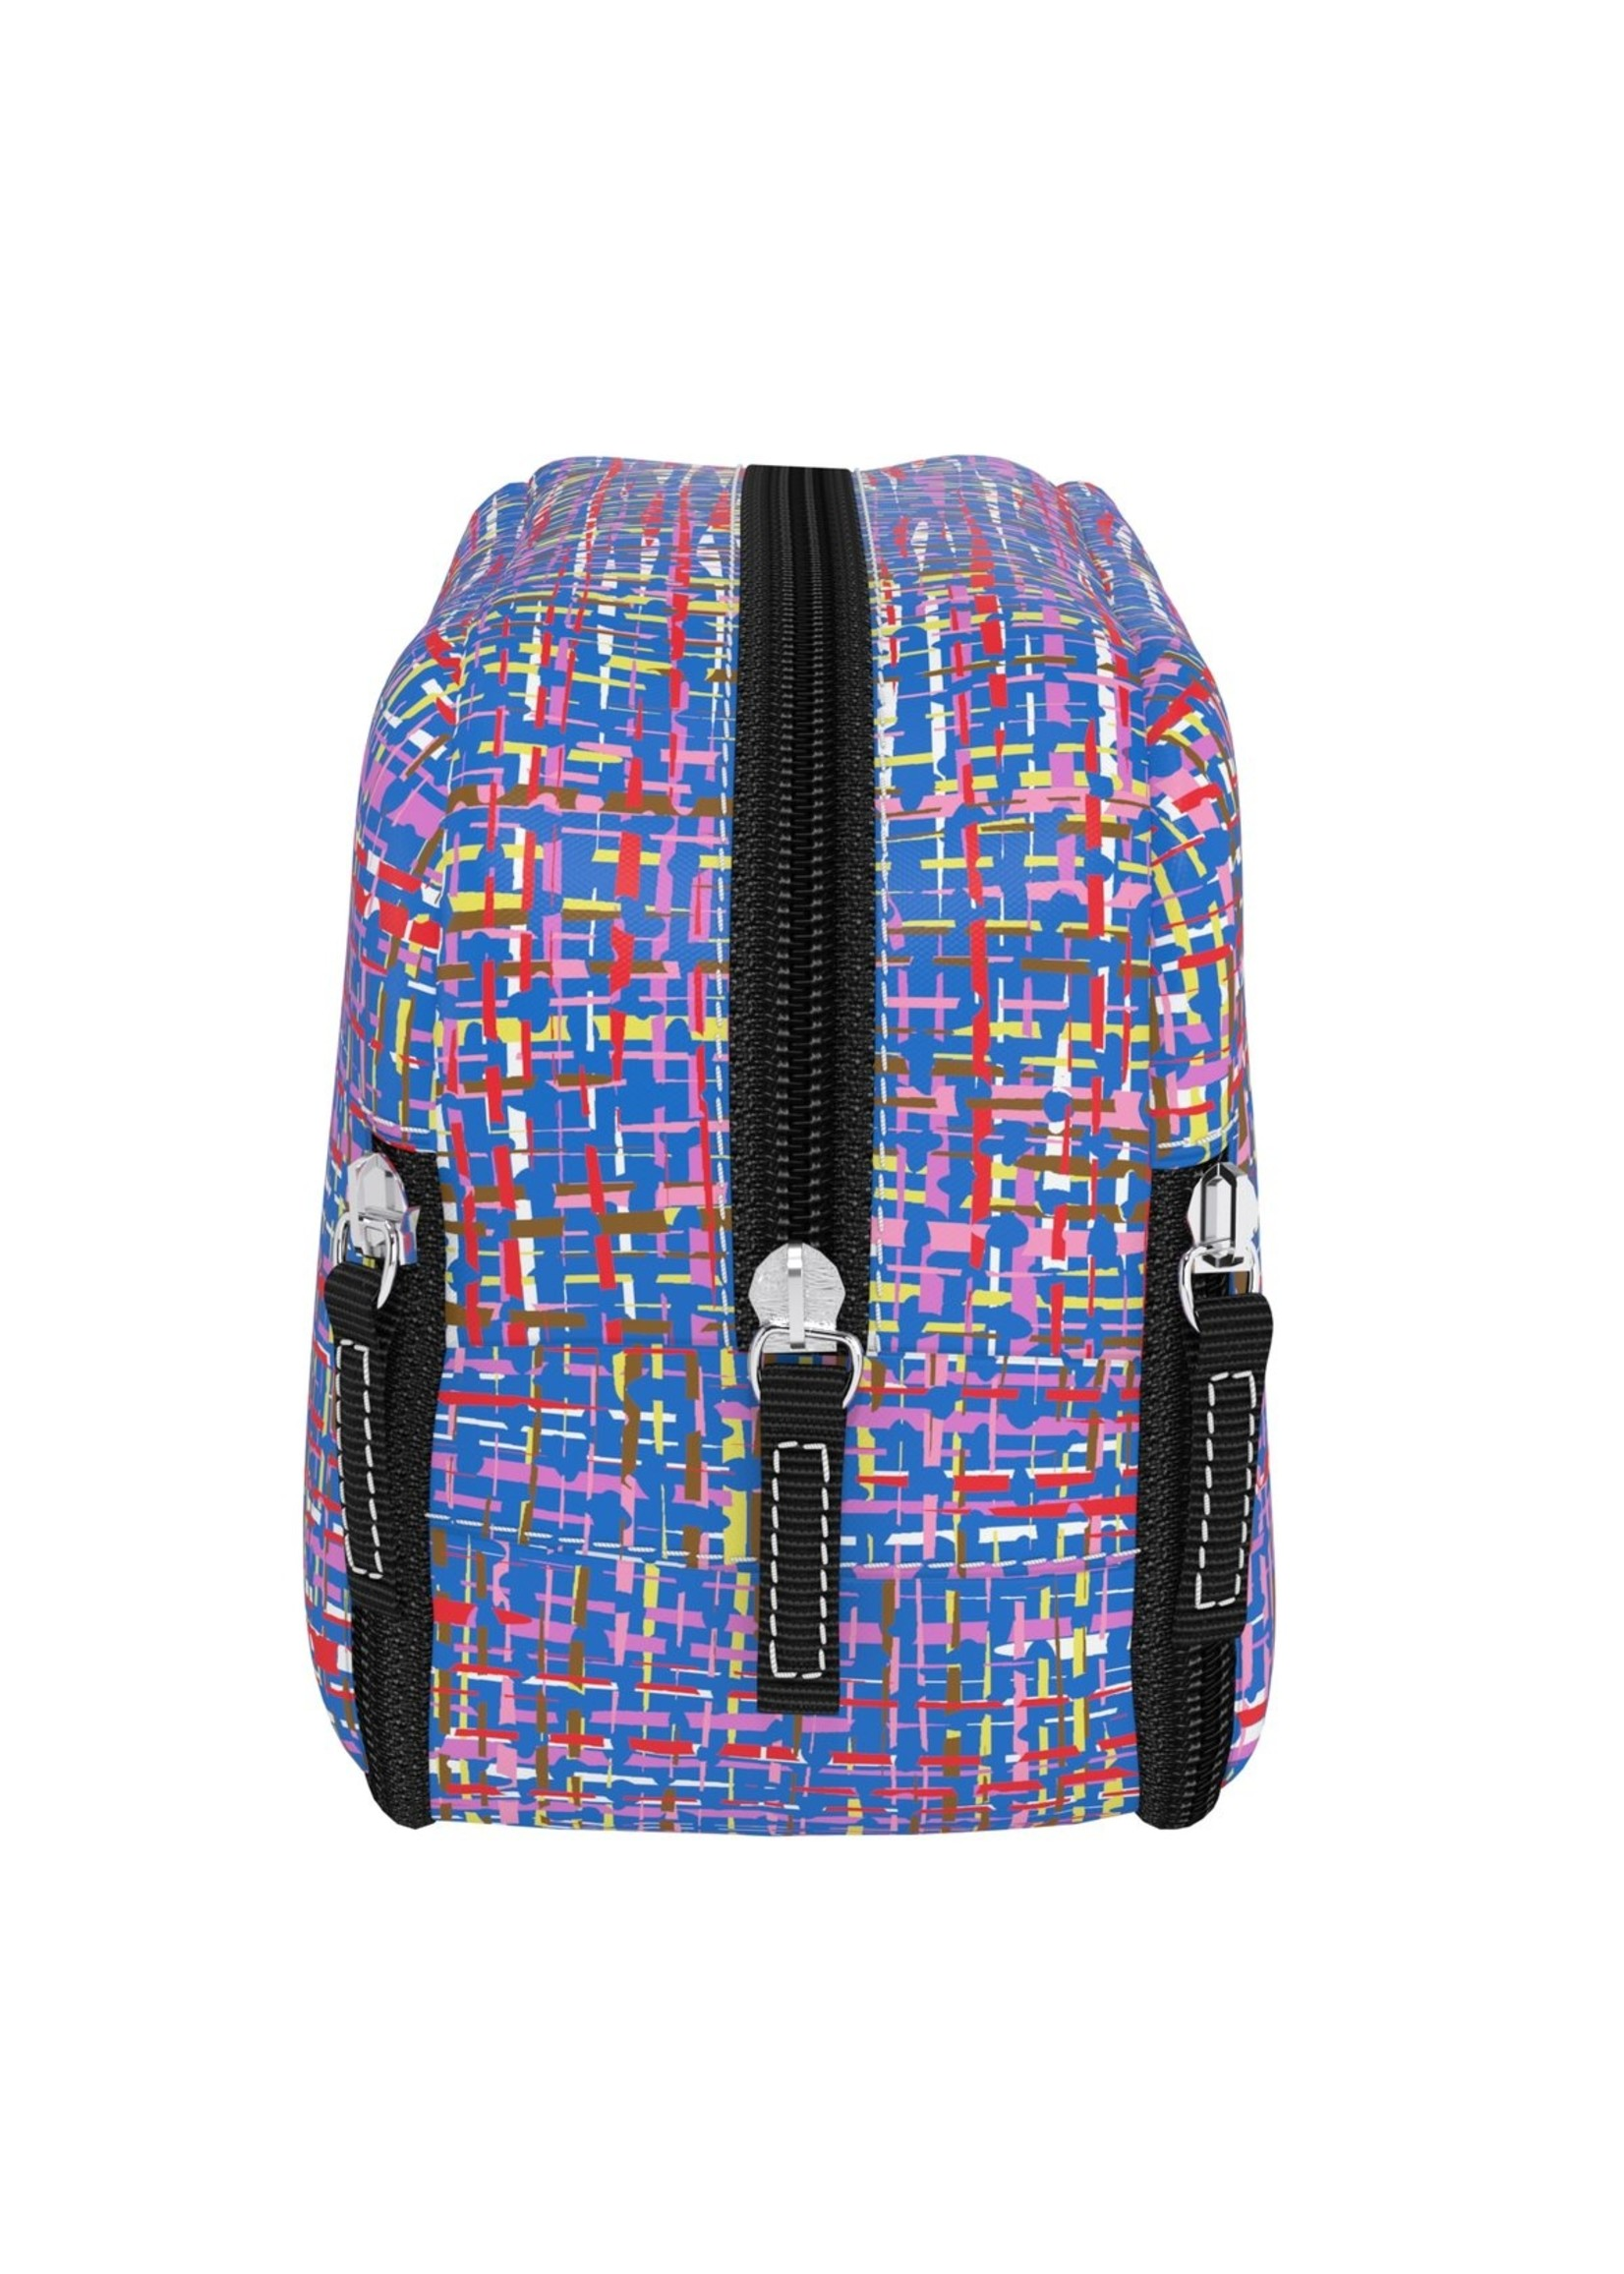 scout by bungalow Scout 3 Way Bag Tweedle Dee